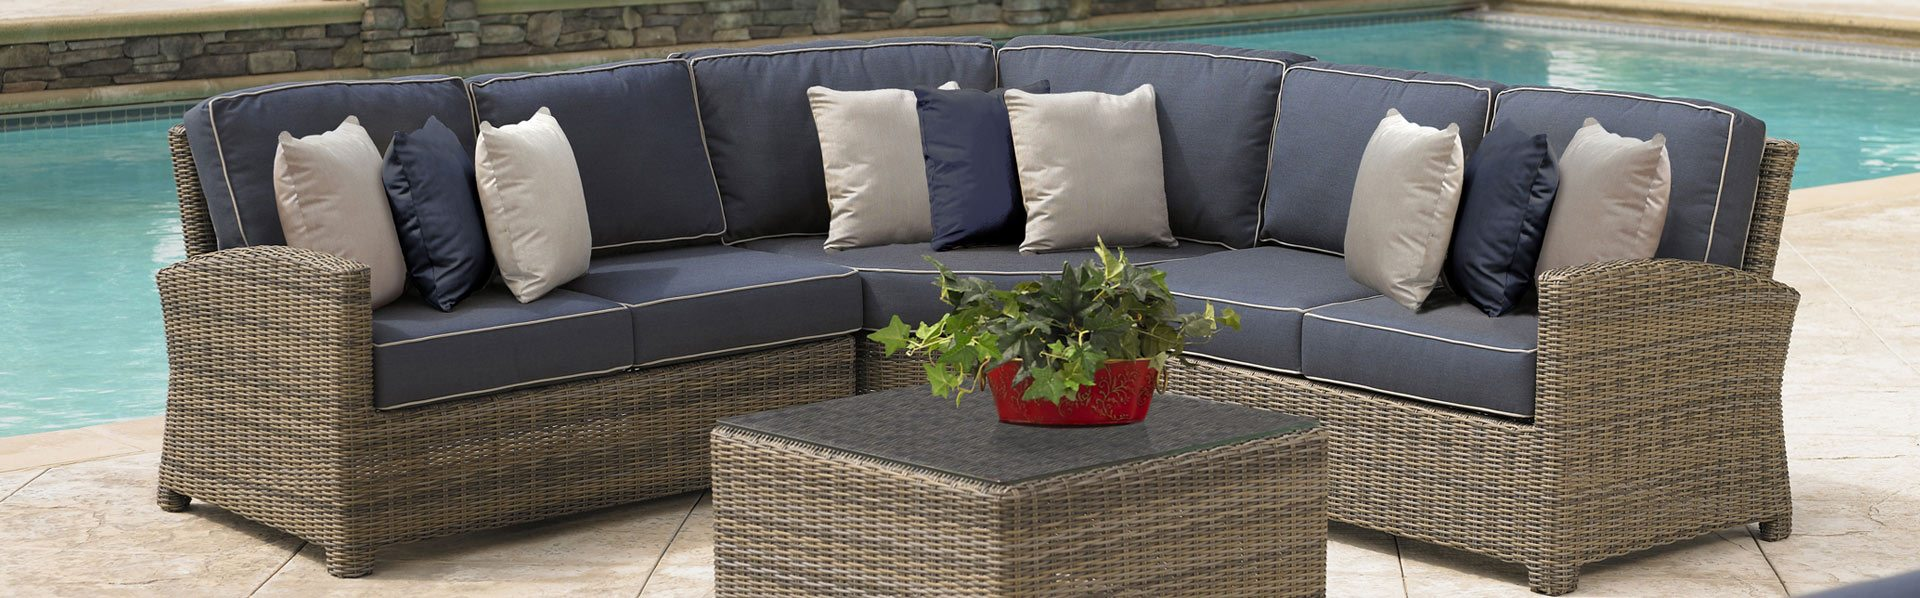 Hodgson Patio Furniture